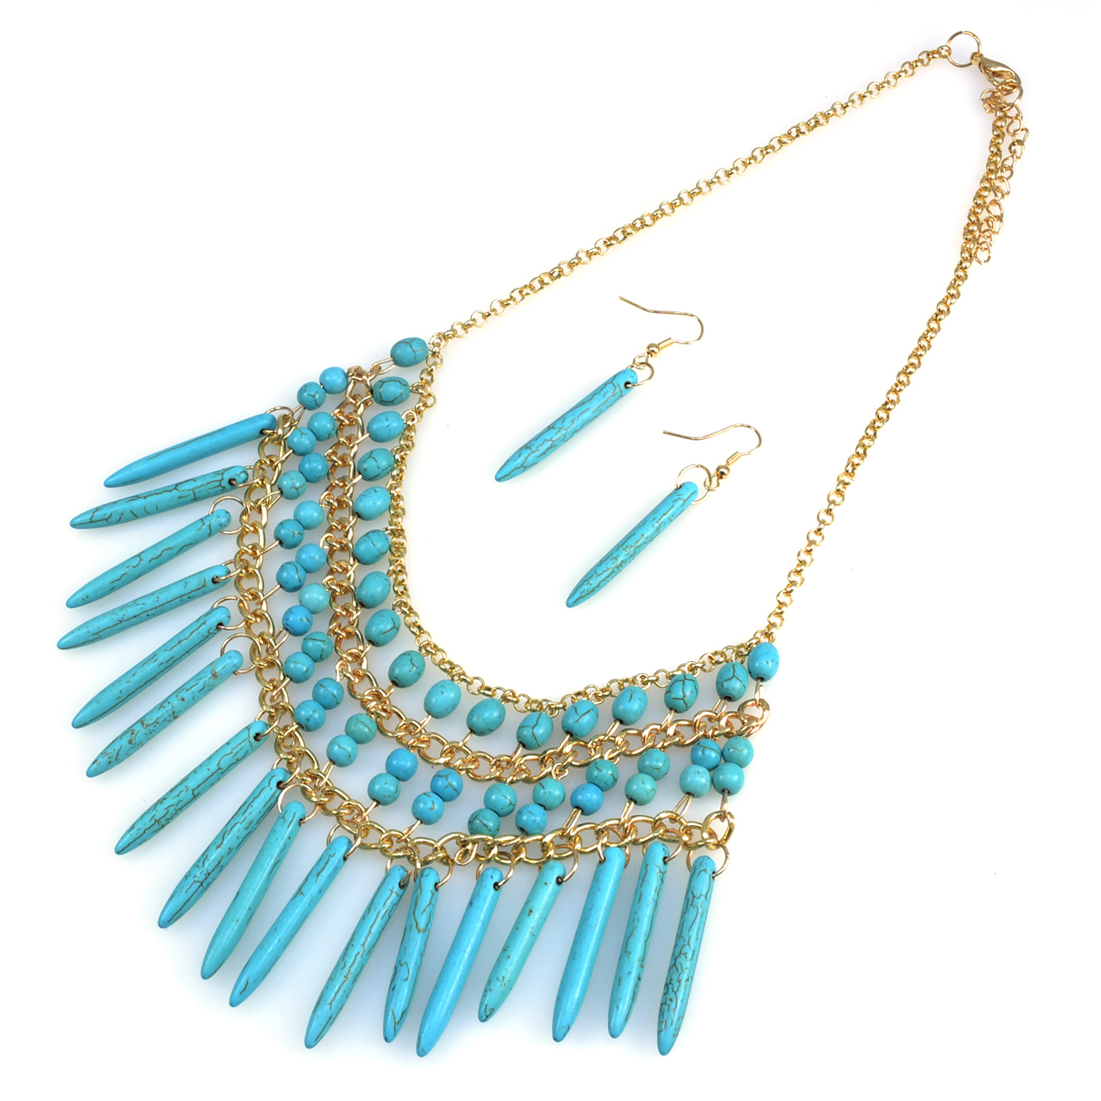 Turquoise Beaded Bib Necklace and Earring Set